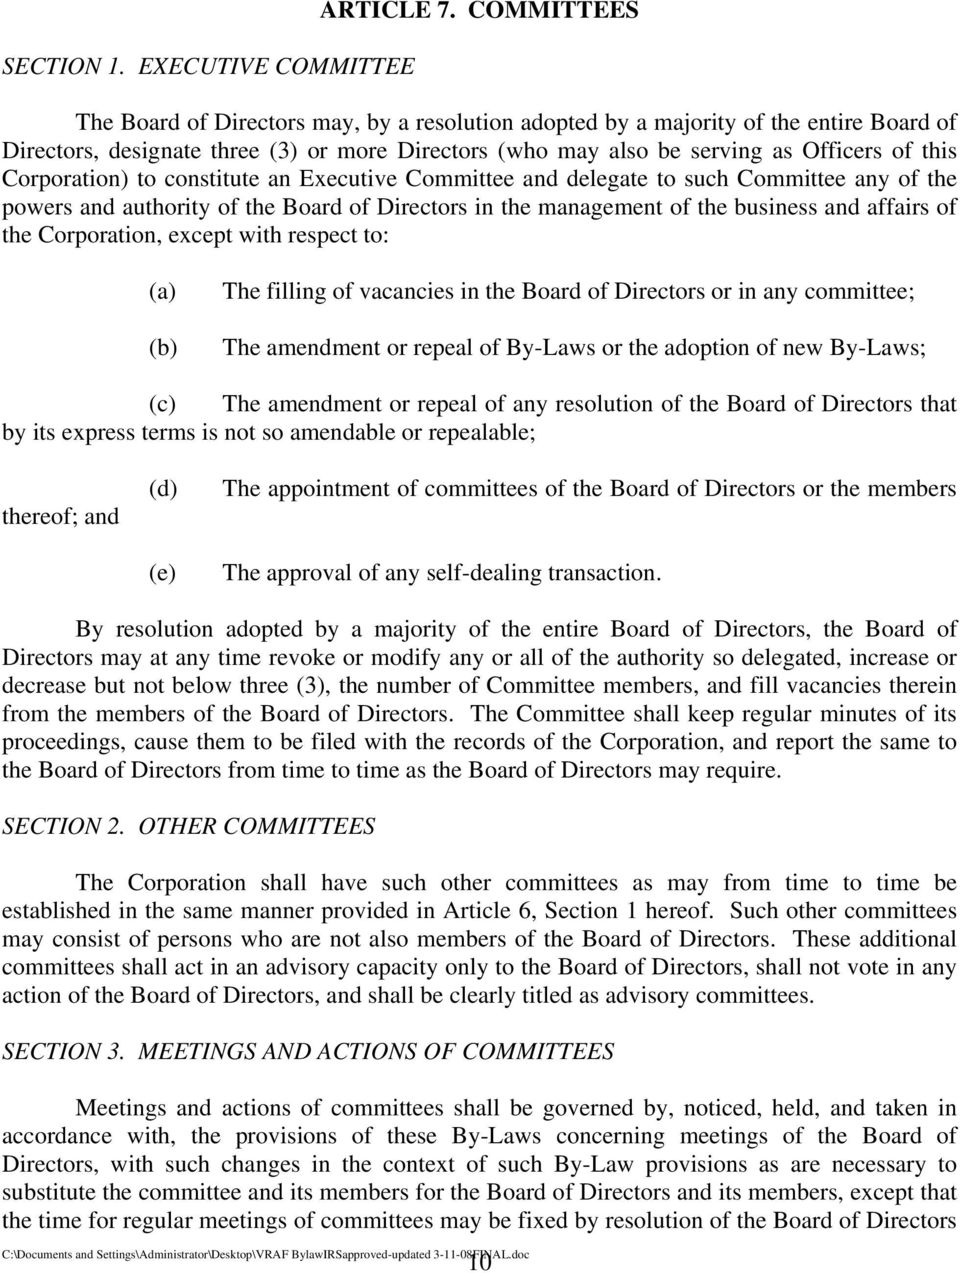 Corporation) to constitute an Executive Committee and delegate to such Committee any of the powers and authority of the Board of Directors in the management of the business and affairs of the